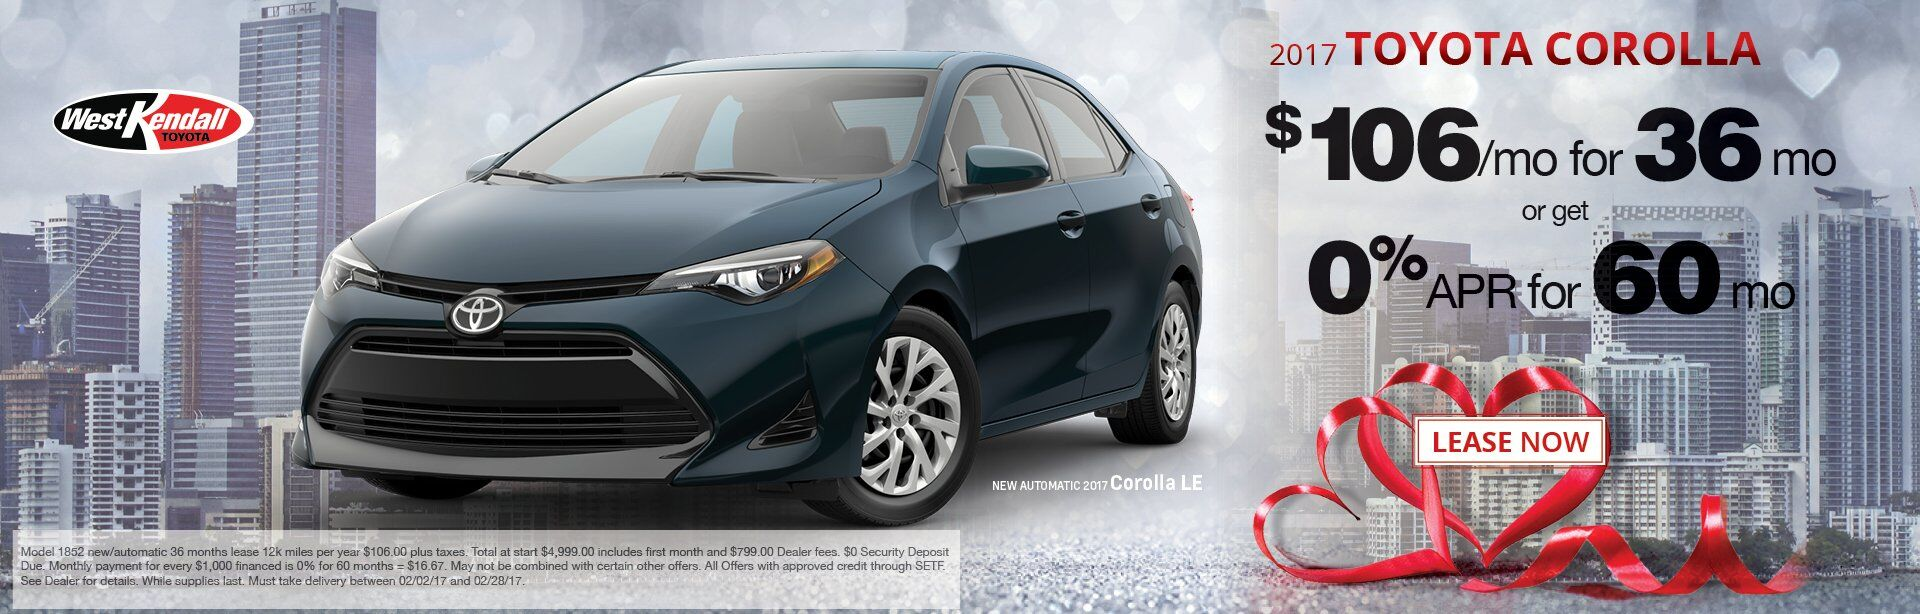 New Toyota Car Specials West Kendall Toyota Serving Miami